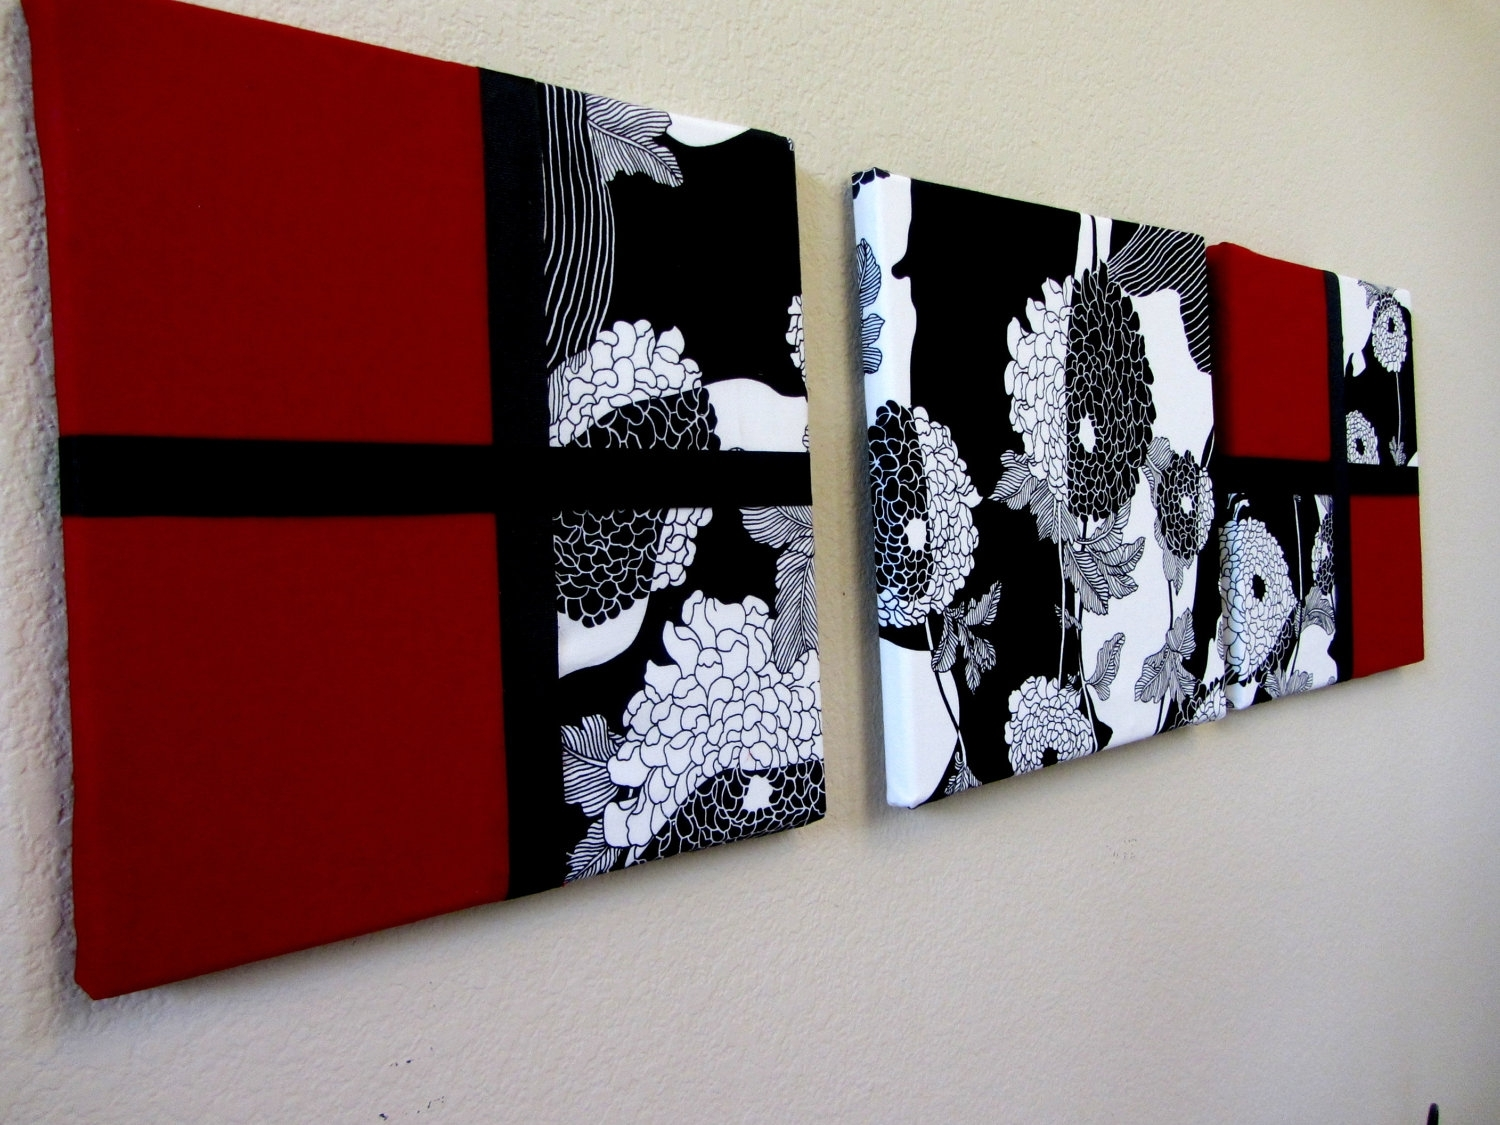 Admirable Wall Art Oversized Abstract Wall Art Black For Scenario In Most Recent Red Fabric Wall Art (View 1 of 15)